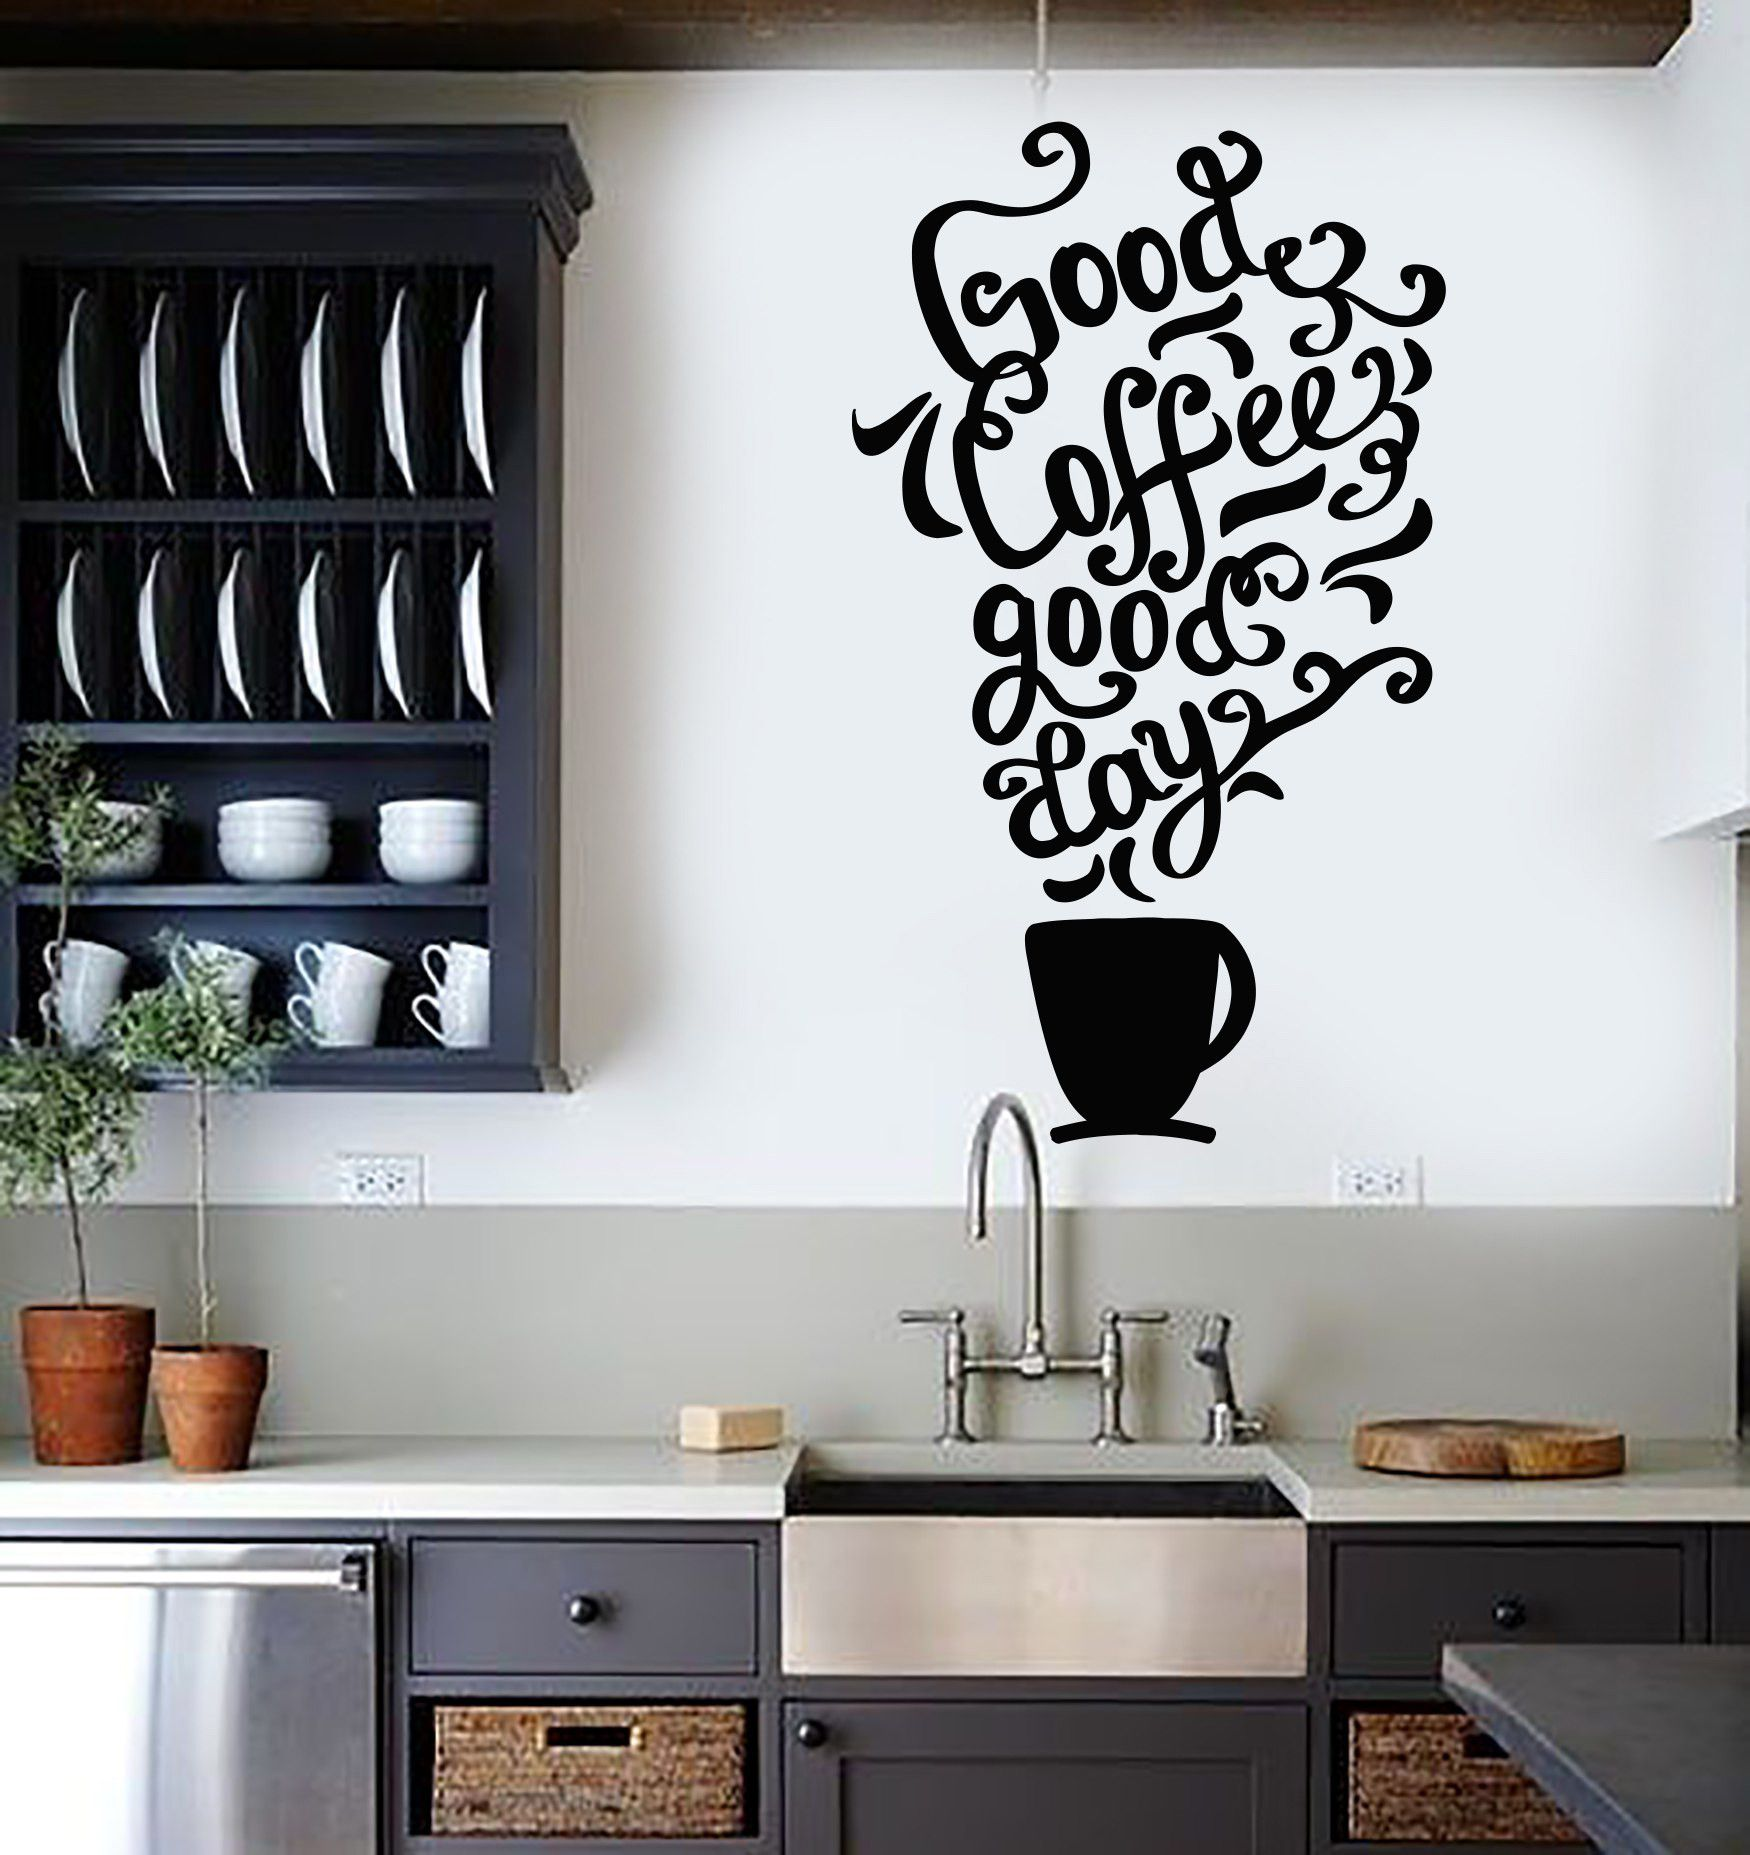 Vinyl wall decal quote coffee kitchen shop restaurant cafe for What kind of paint to use on kitchen cabinets for best stores for wall art